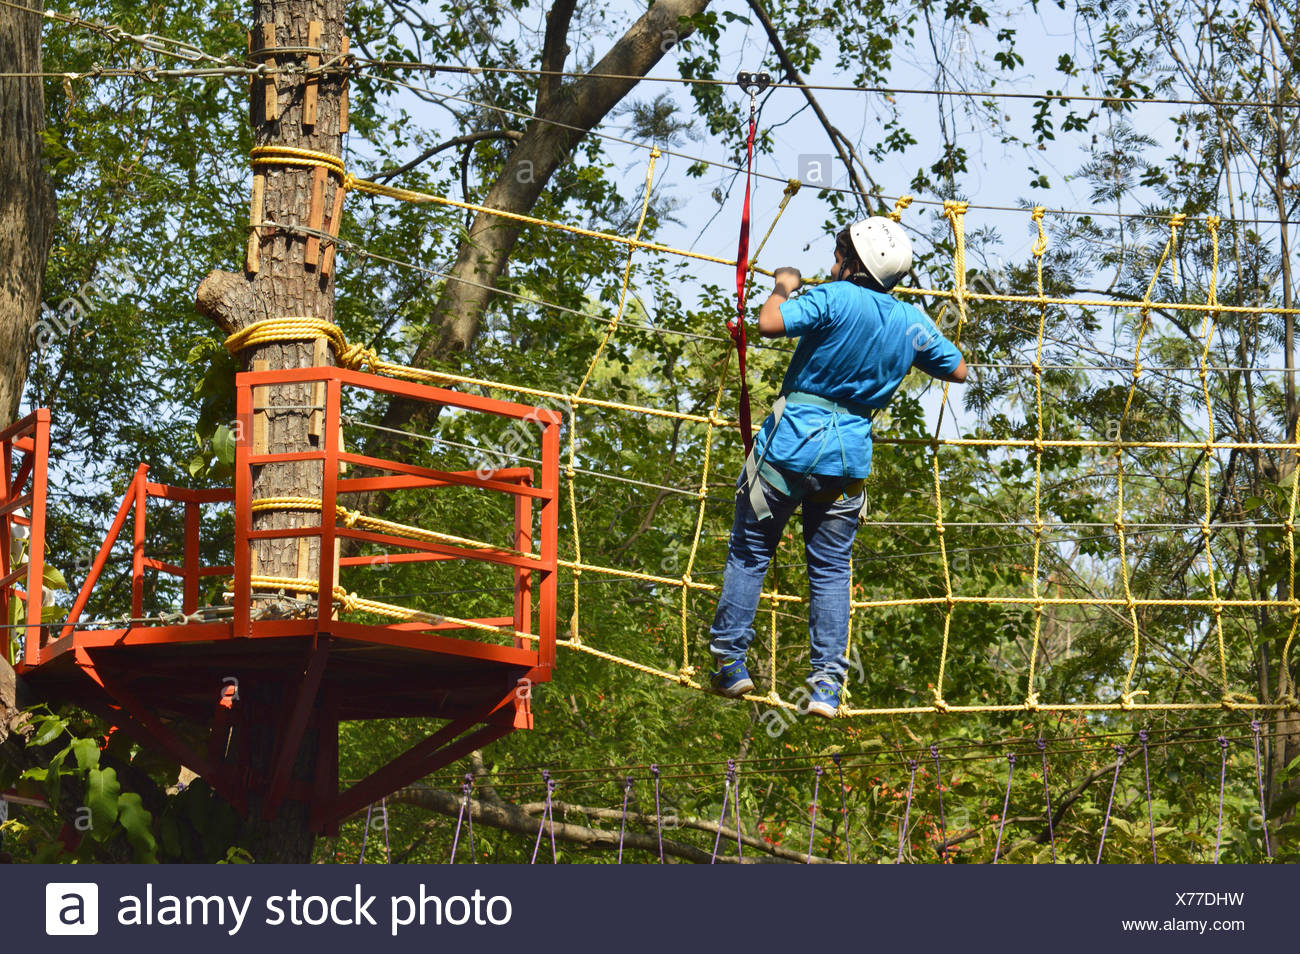 Rope obstacle on tree top - Stock Image